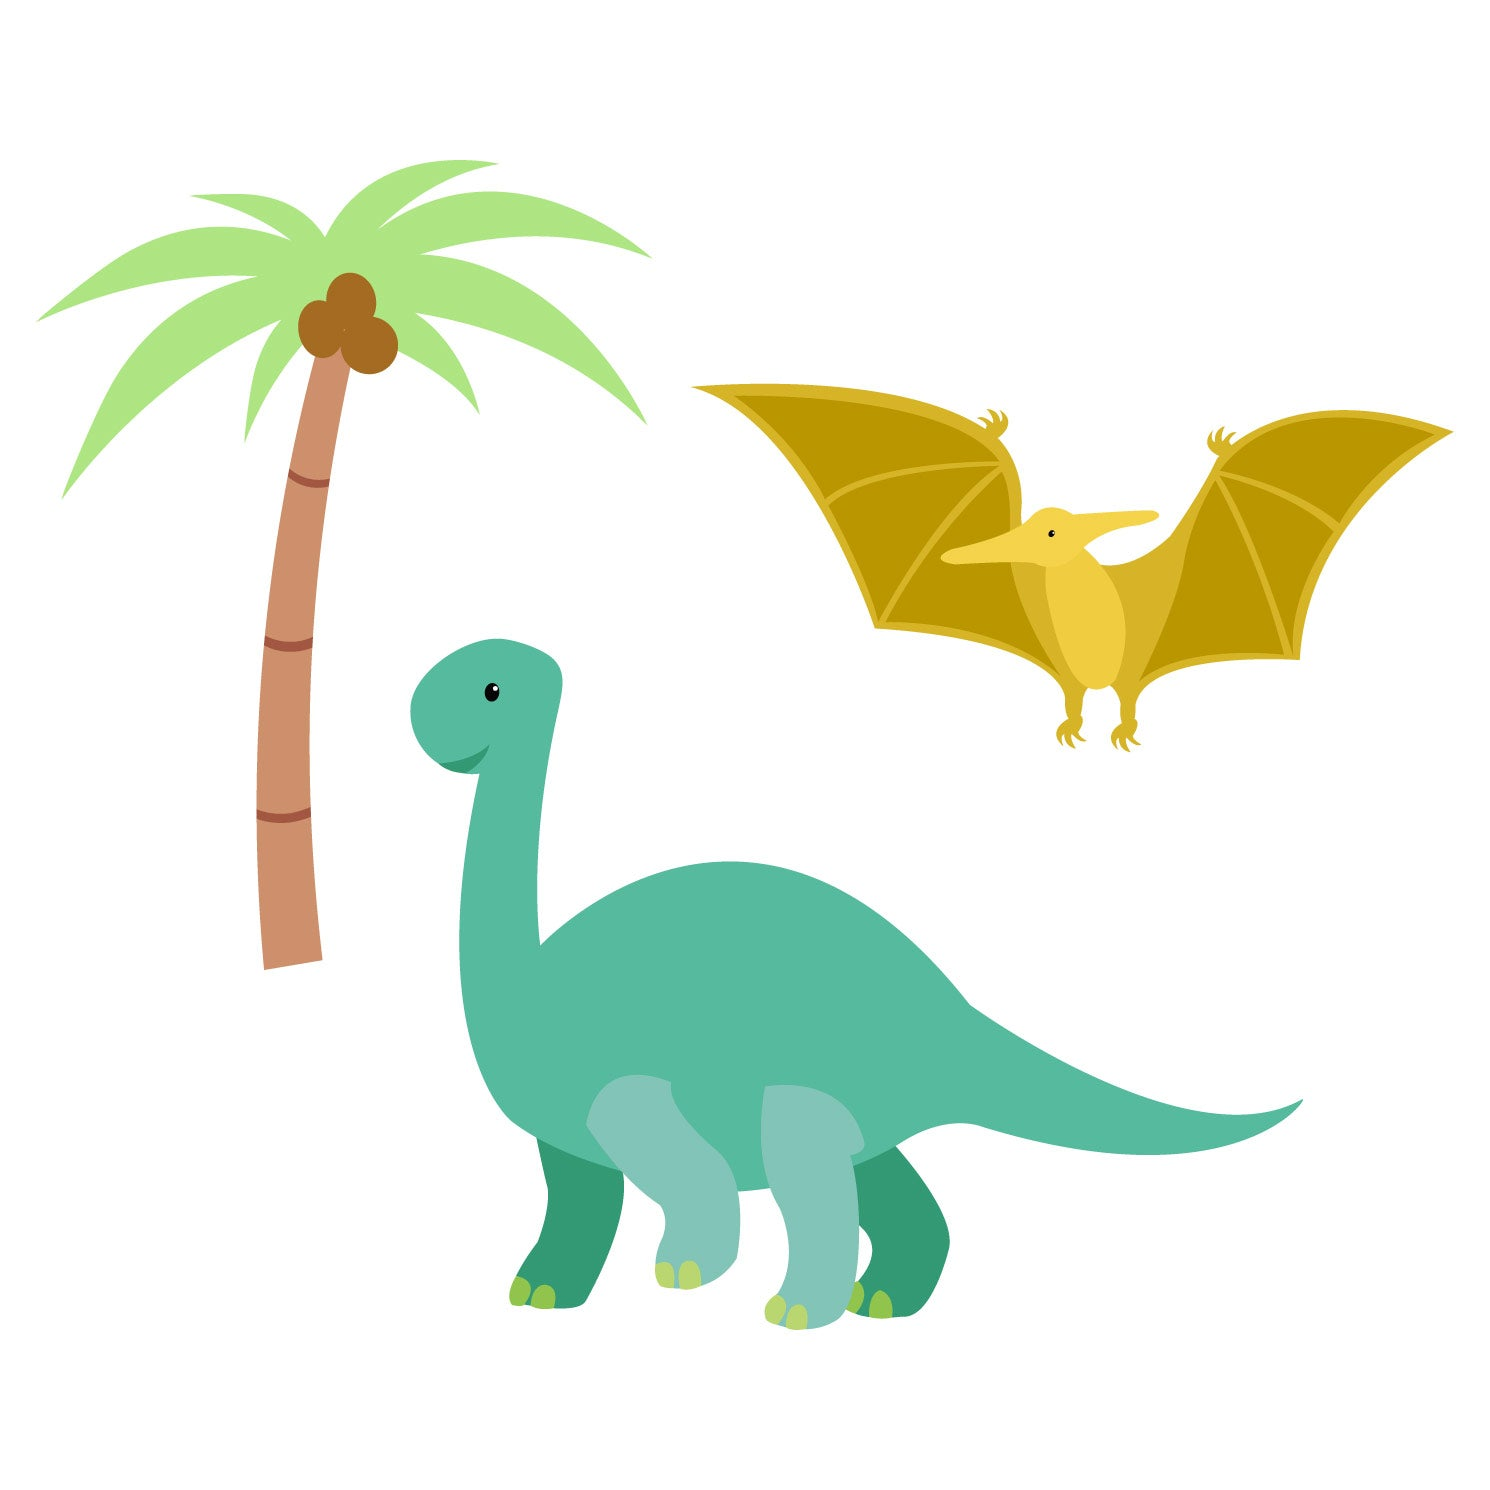 green and yellow dinosaurs next to palm tree waterproof stickers